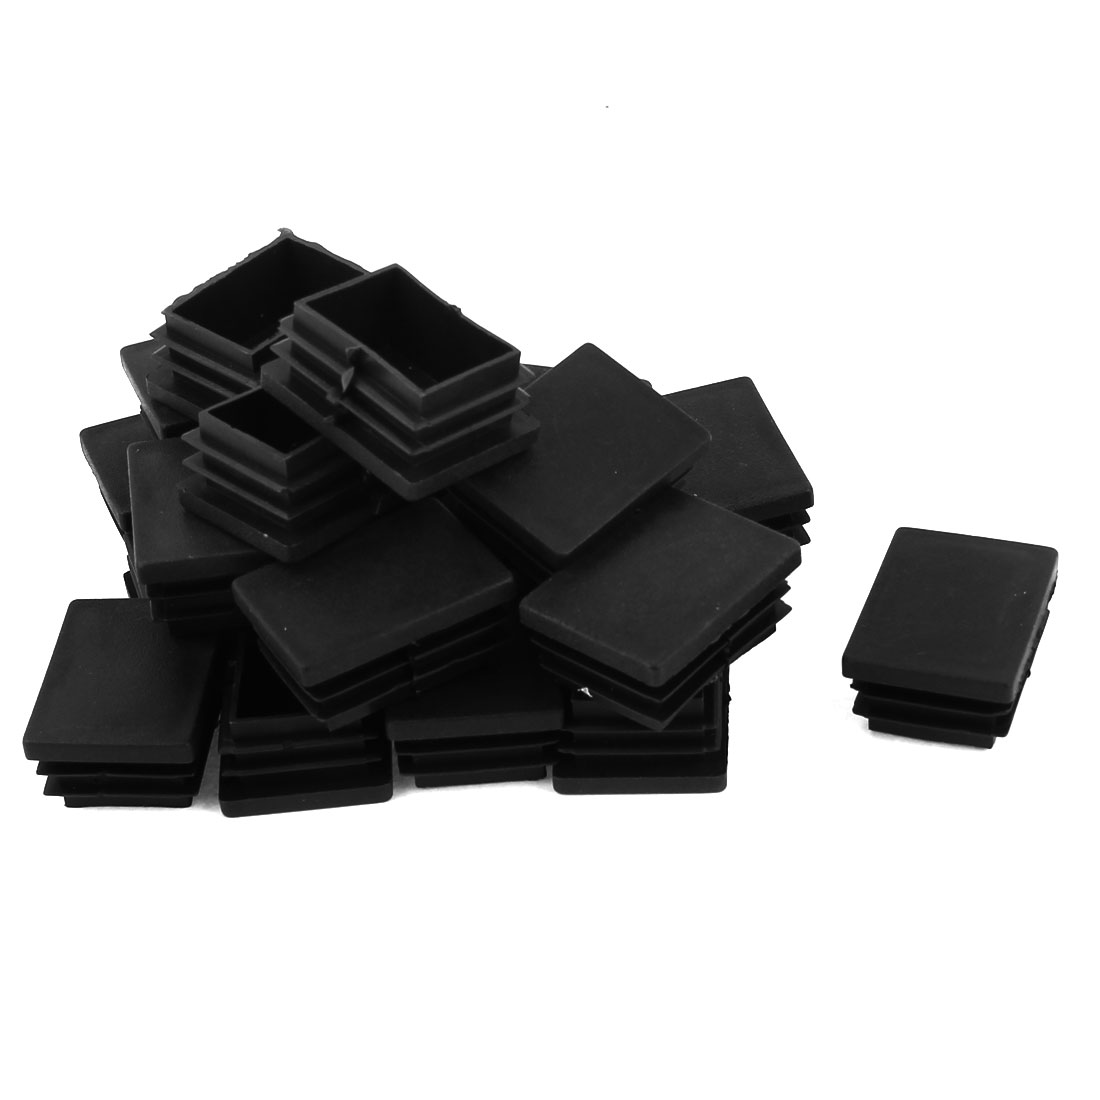 24 Pcs Black Plastic Rectangle Blanking End Caps Tubing Tube Inserts 30mm x 40mm